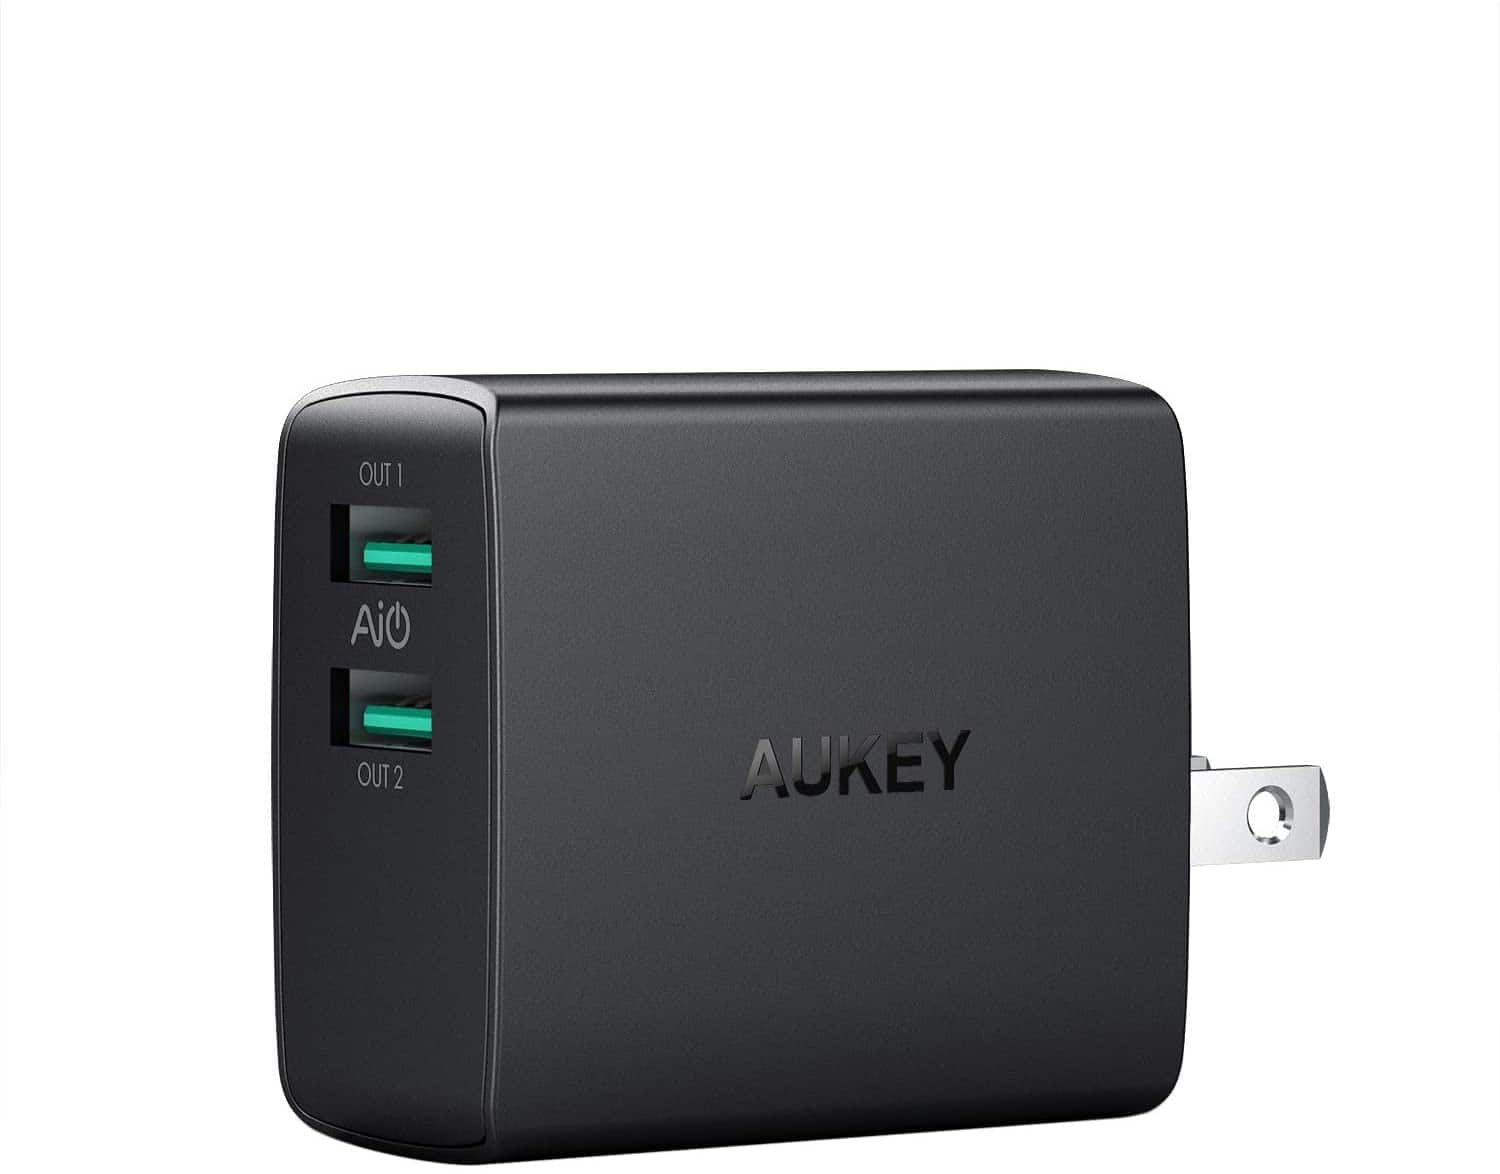 Aukey Dual Port (2.4x2) USB Wall Charger $5.60